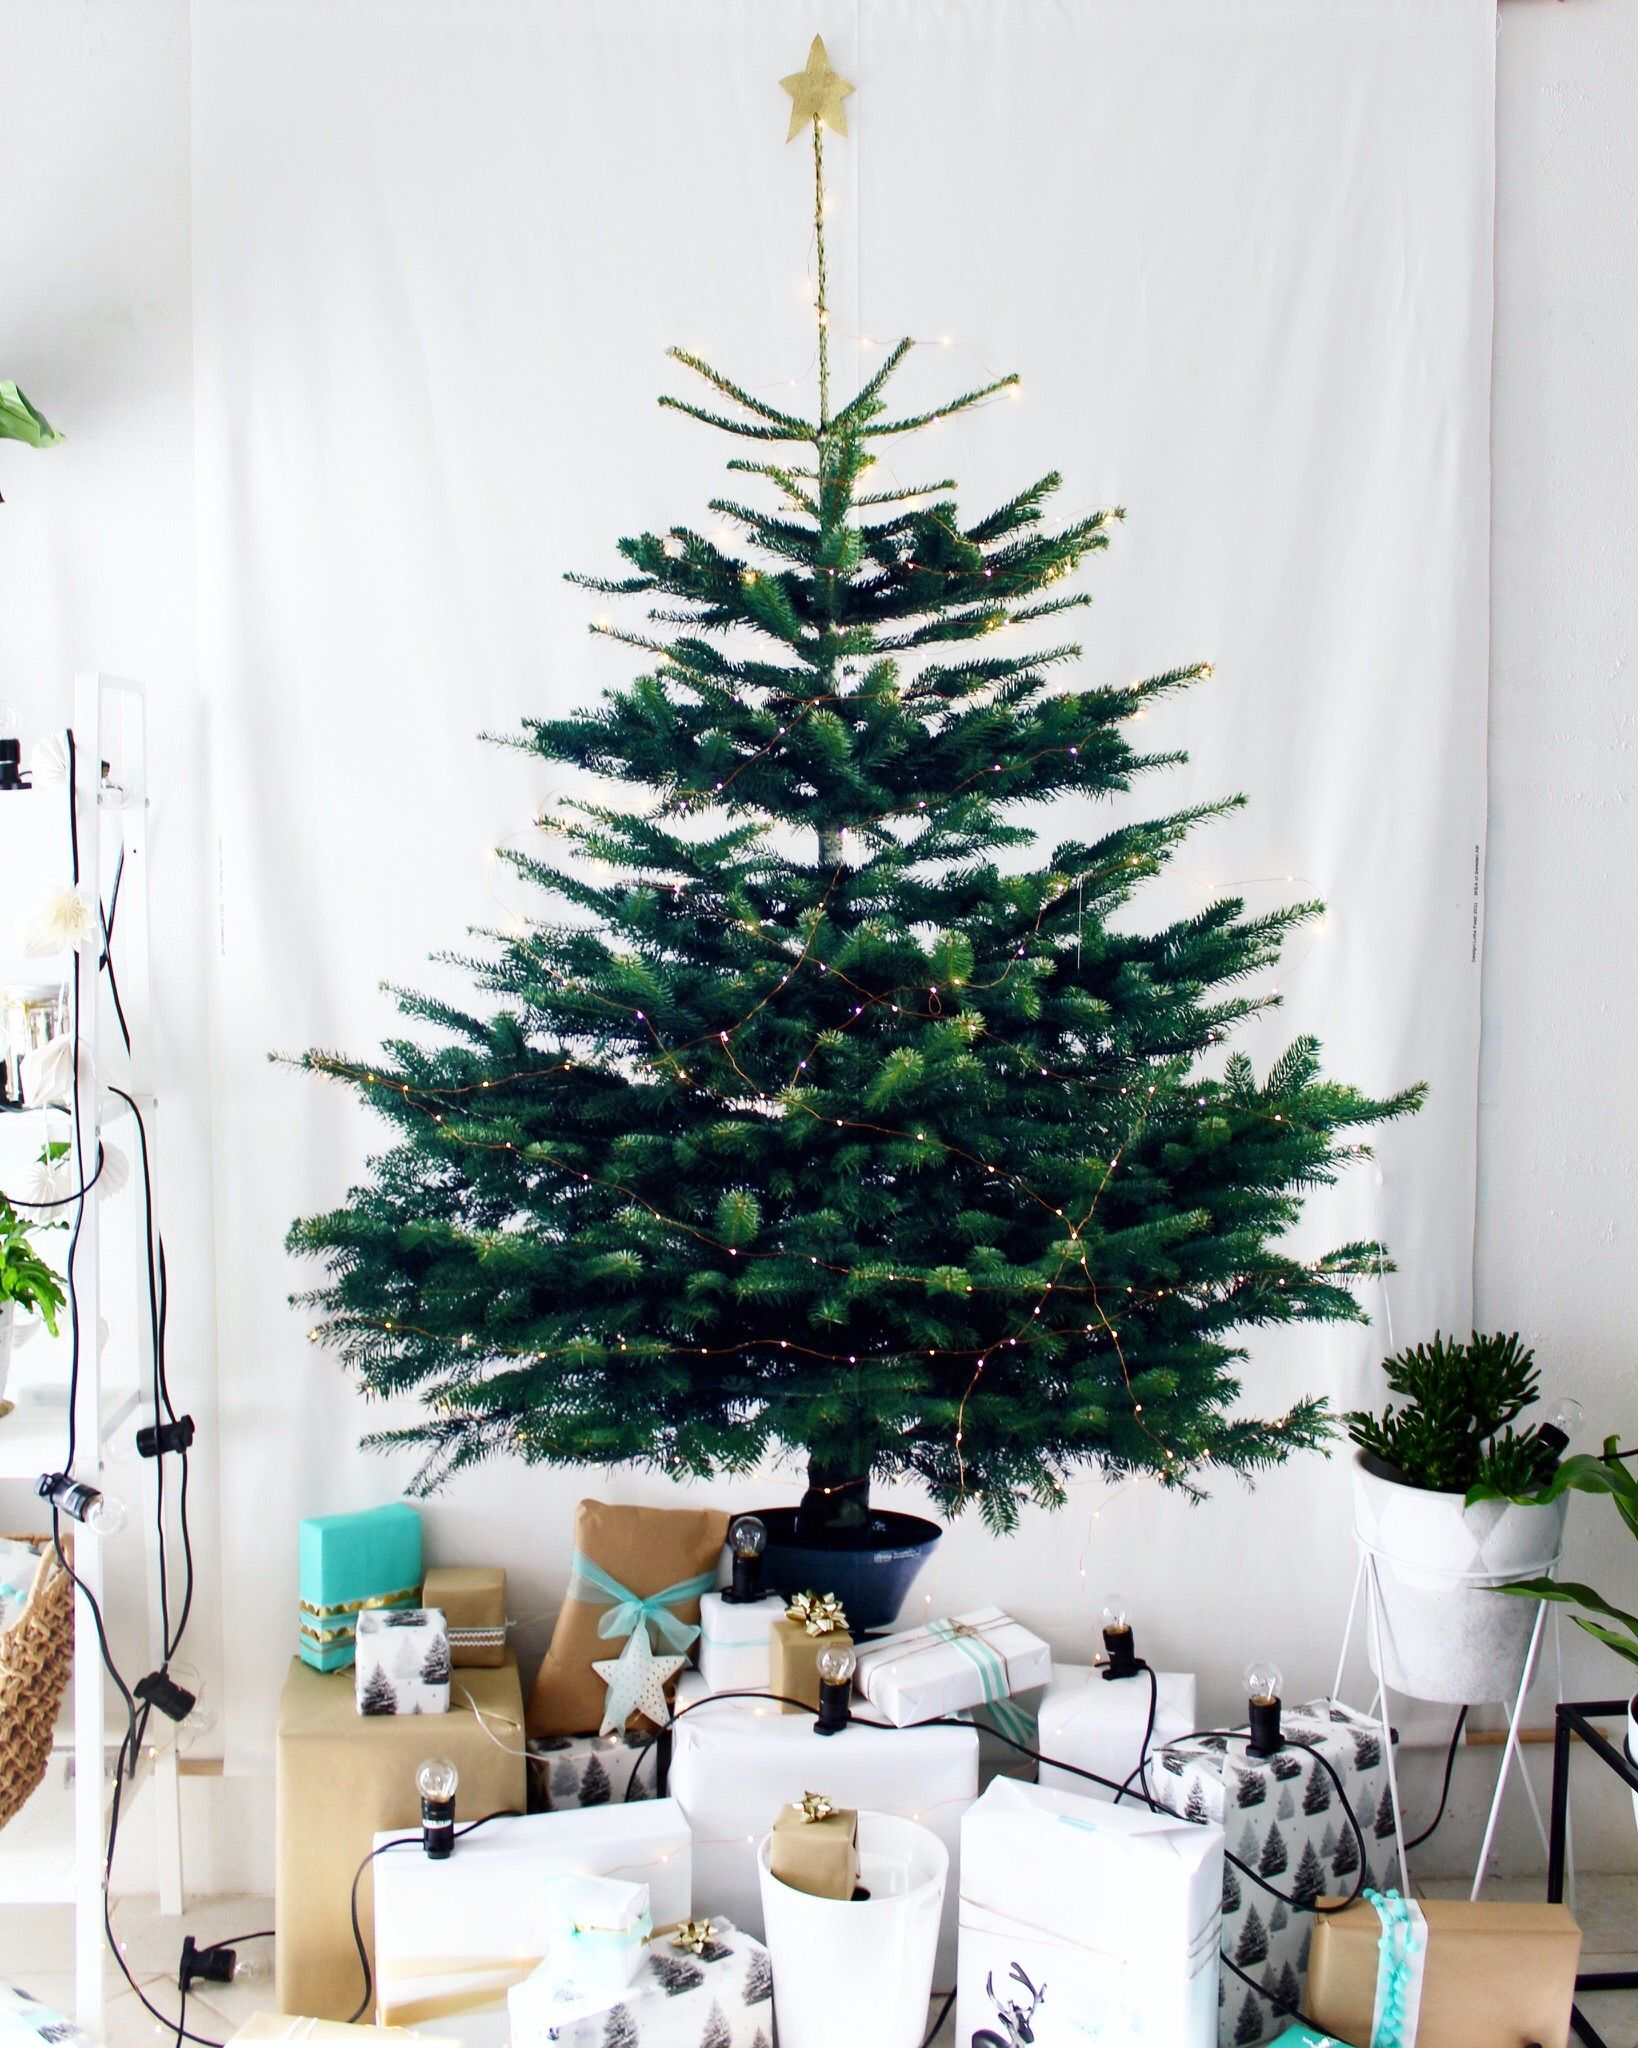 Christmas Decoration Ideas For Small Spaces - Diy Ikea Tree